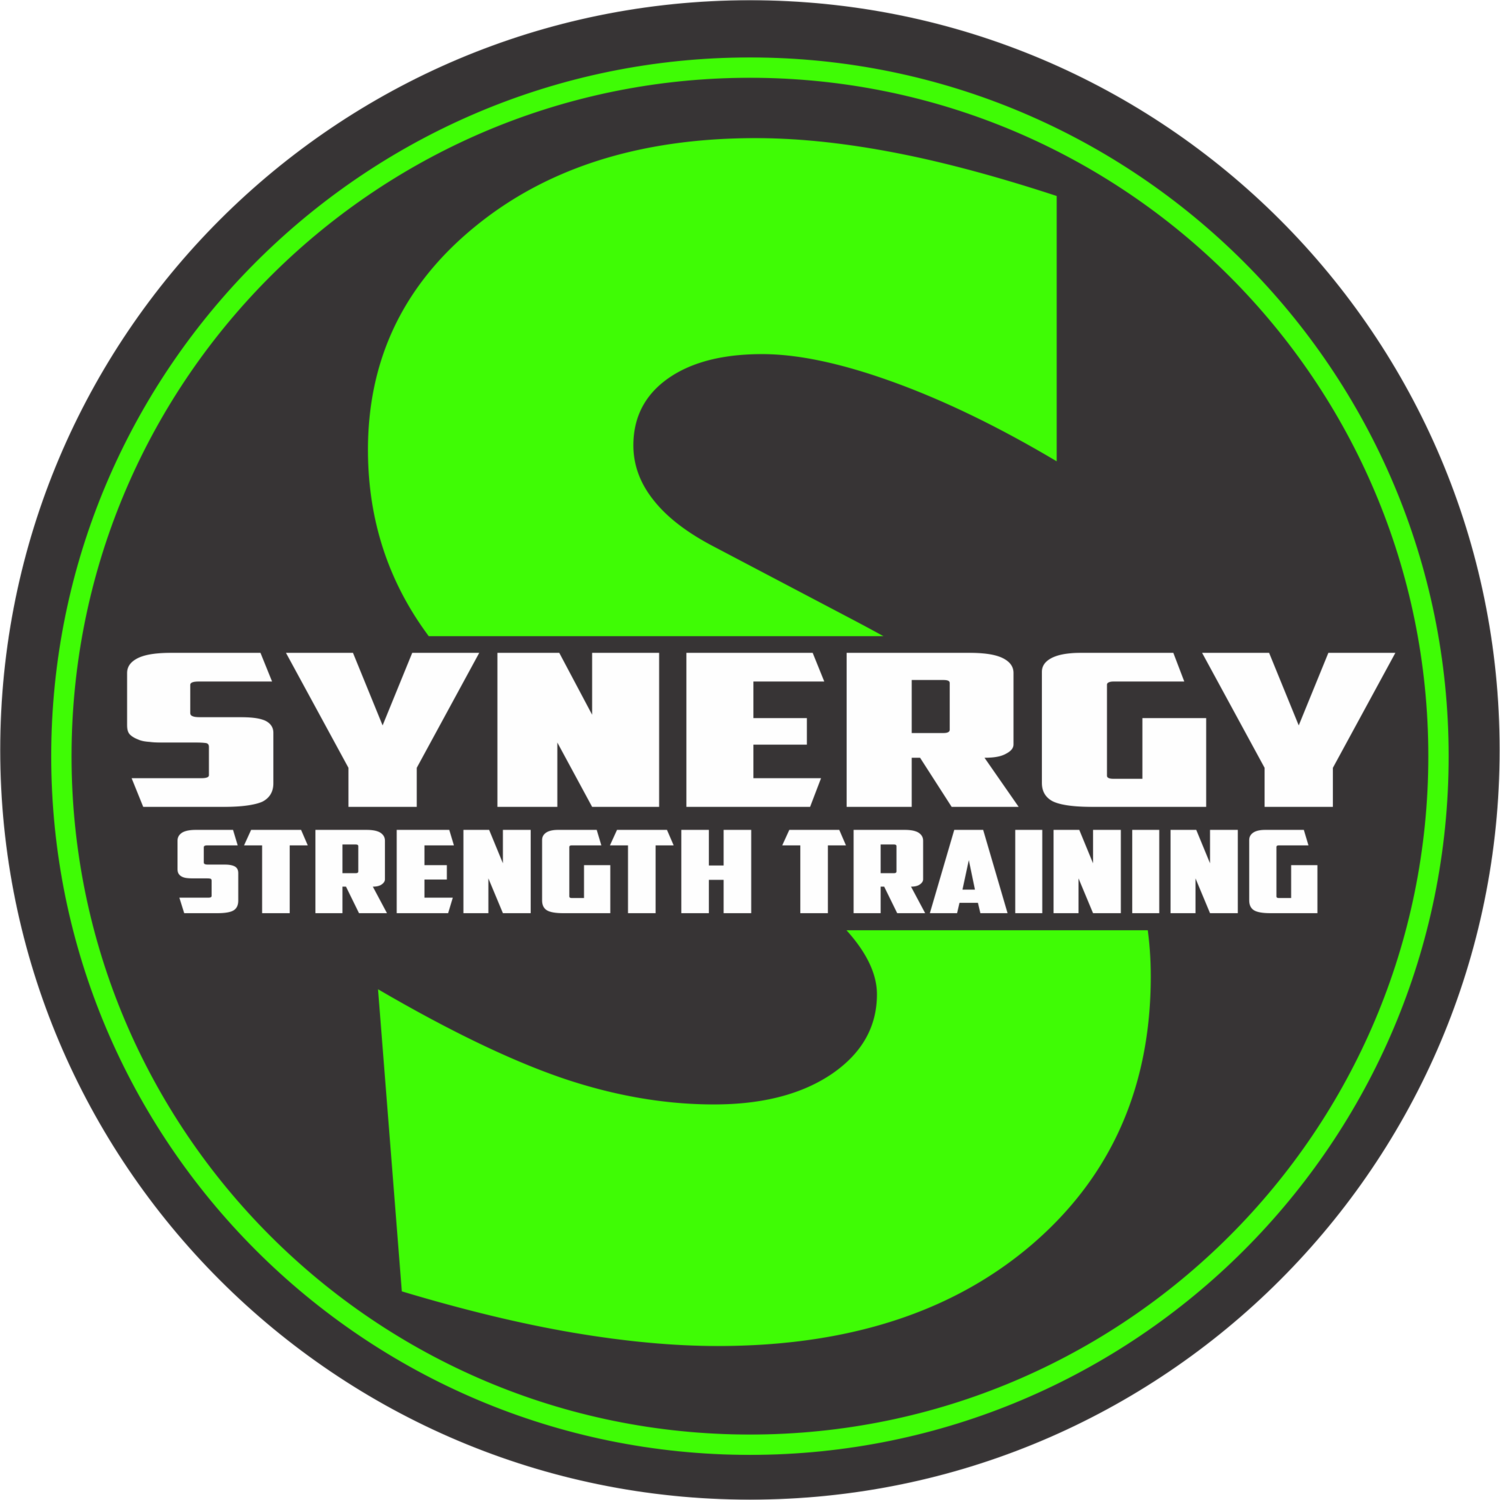 Synergy Strength Training, St. Charles personal training and group fitness coaching, kettlebell and powerlifting